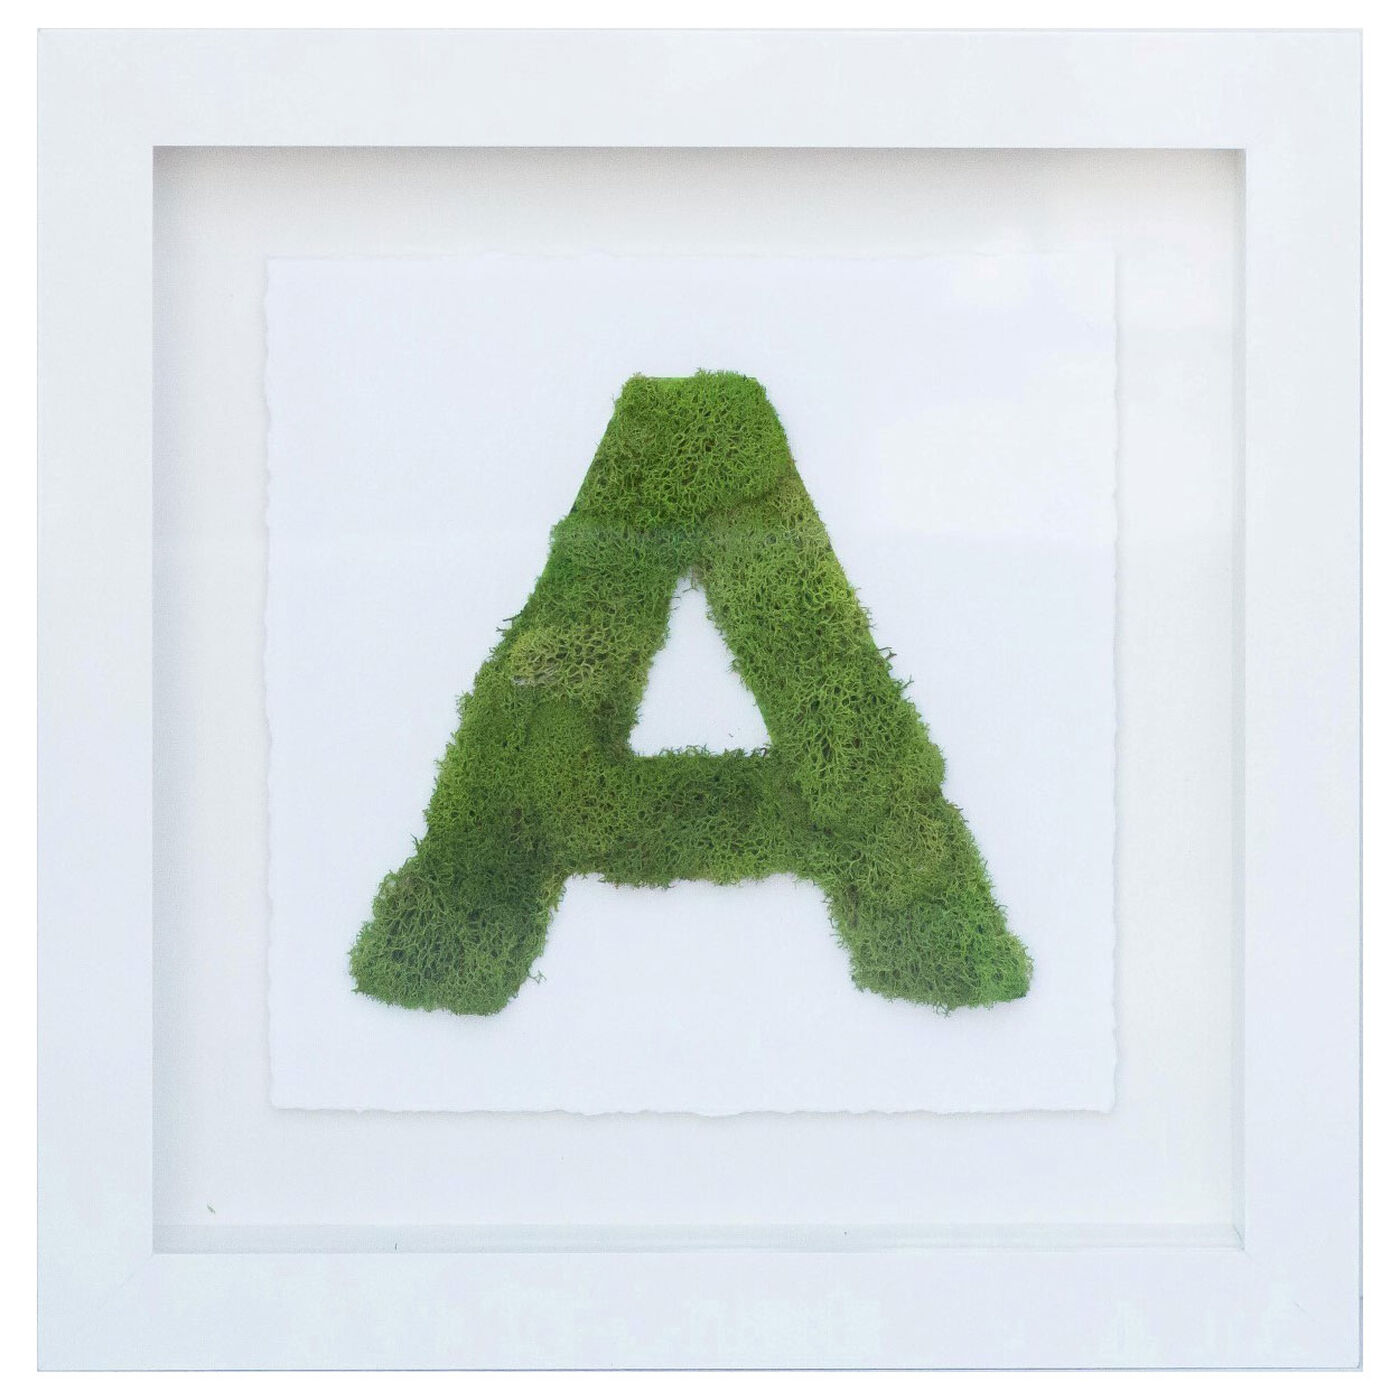 The Letter Nature (A-Z)